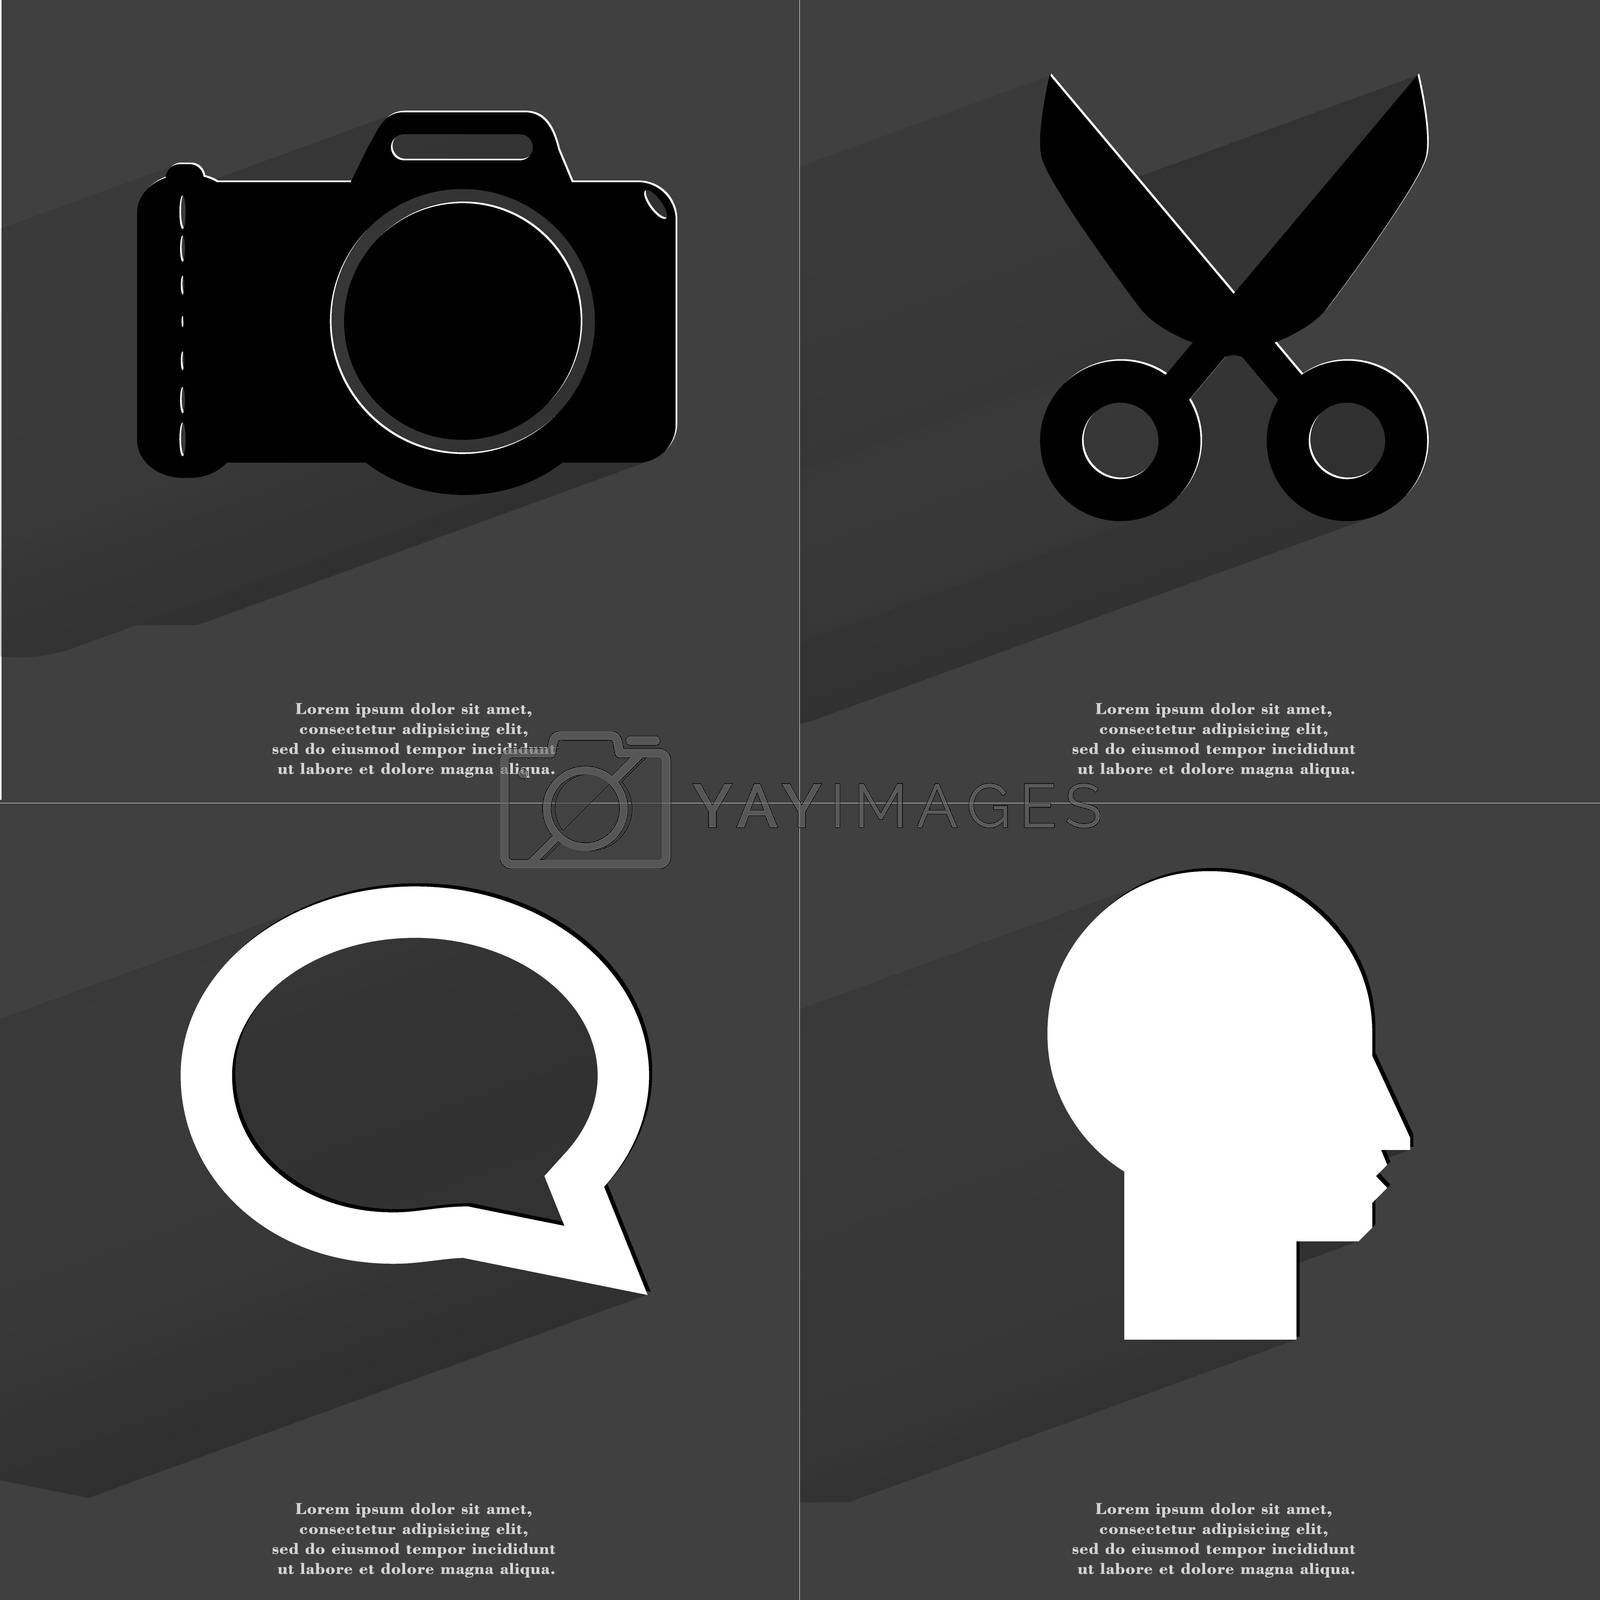 Royalty free image of Camera, Scissors, Chat bubble, Silhouette. Symbols with long shadow. Flat design by serhii_lohvyniuk